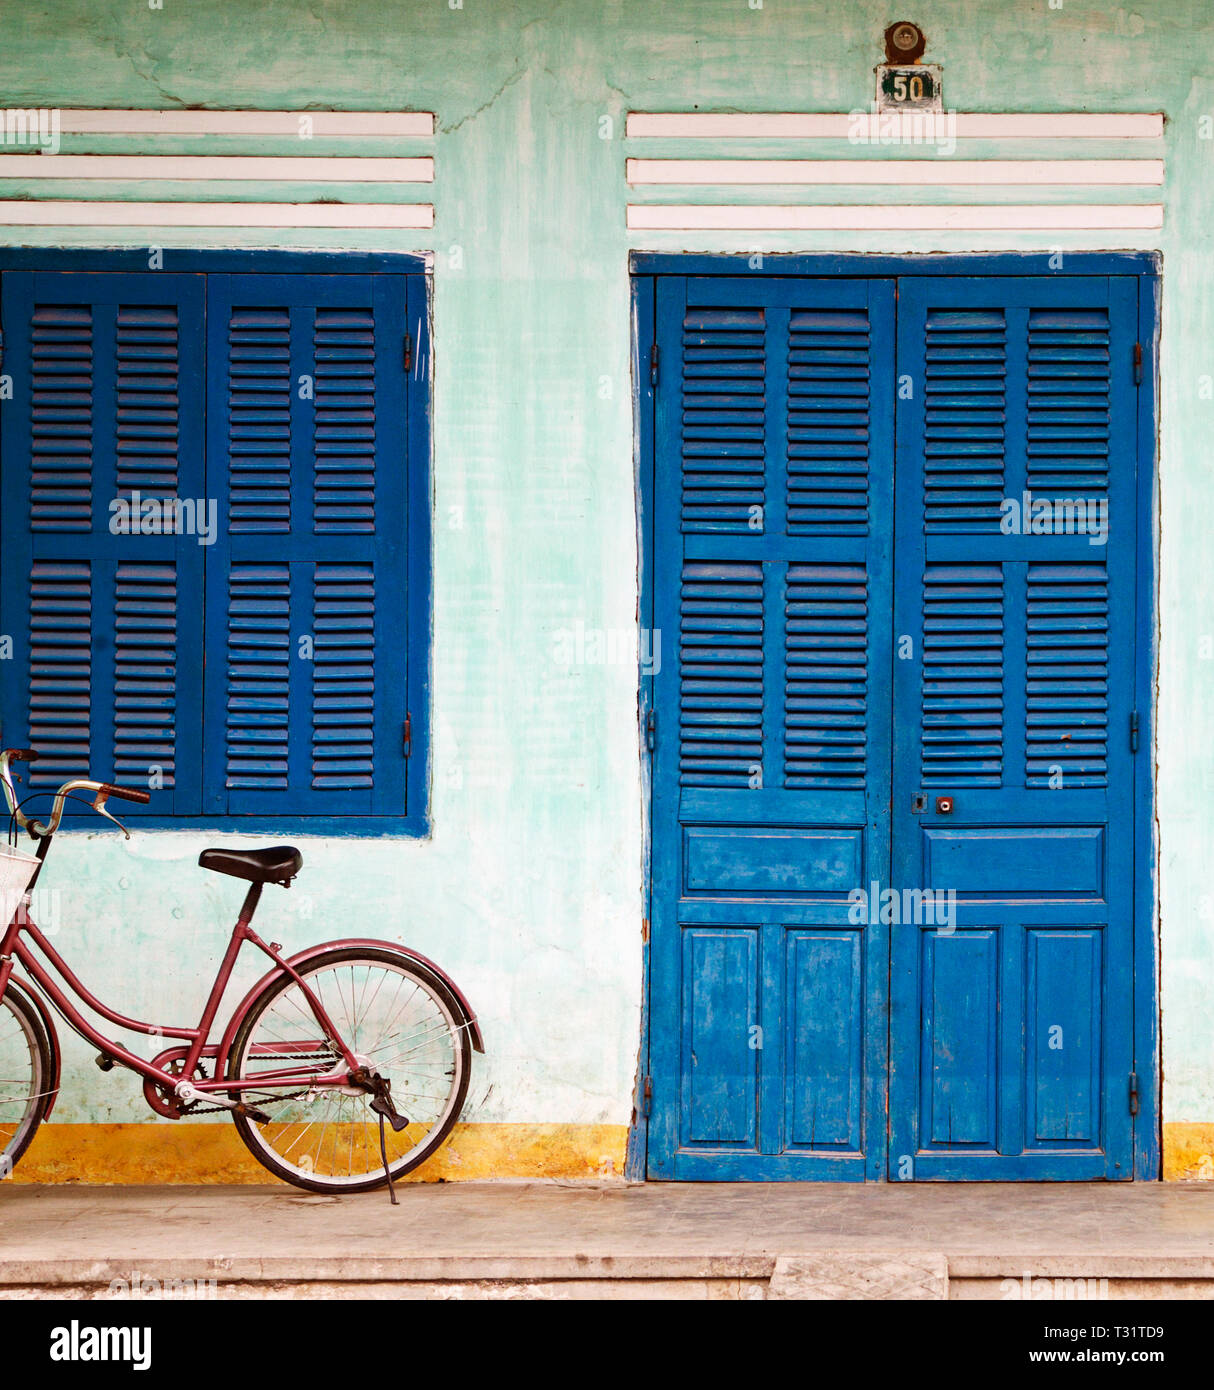 Bike Parked on a Front Porch Stock Photo